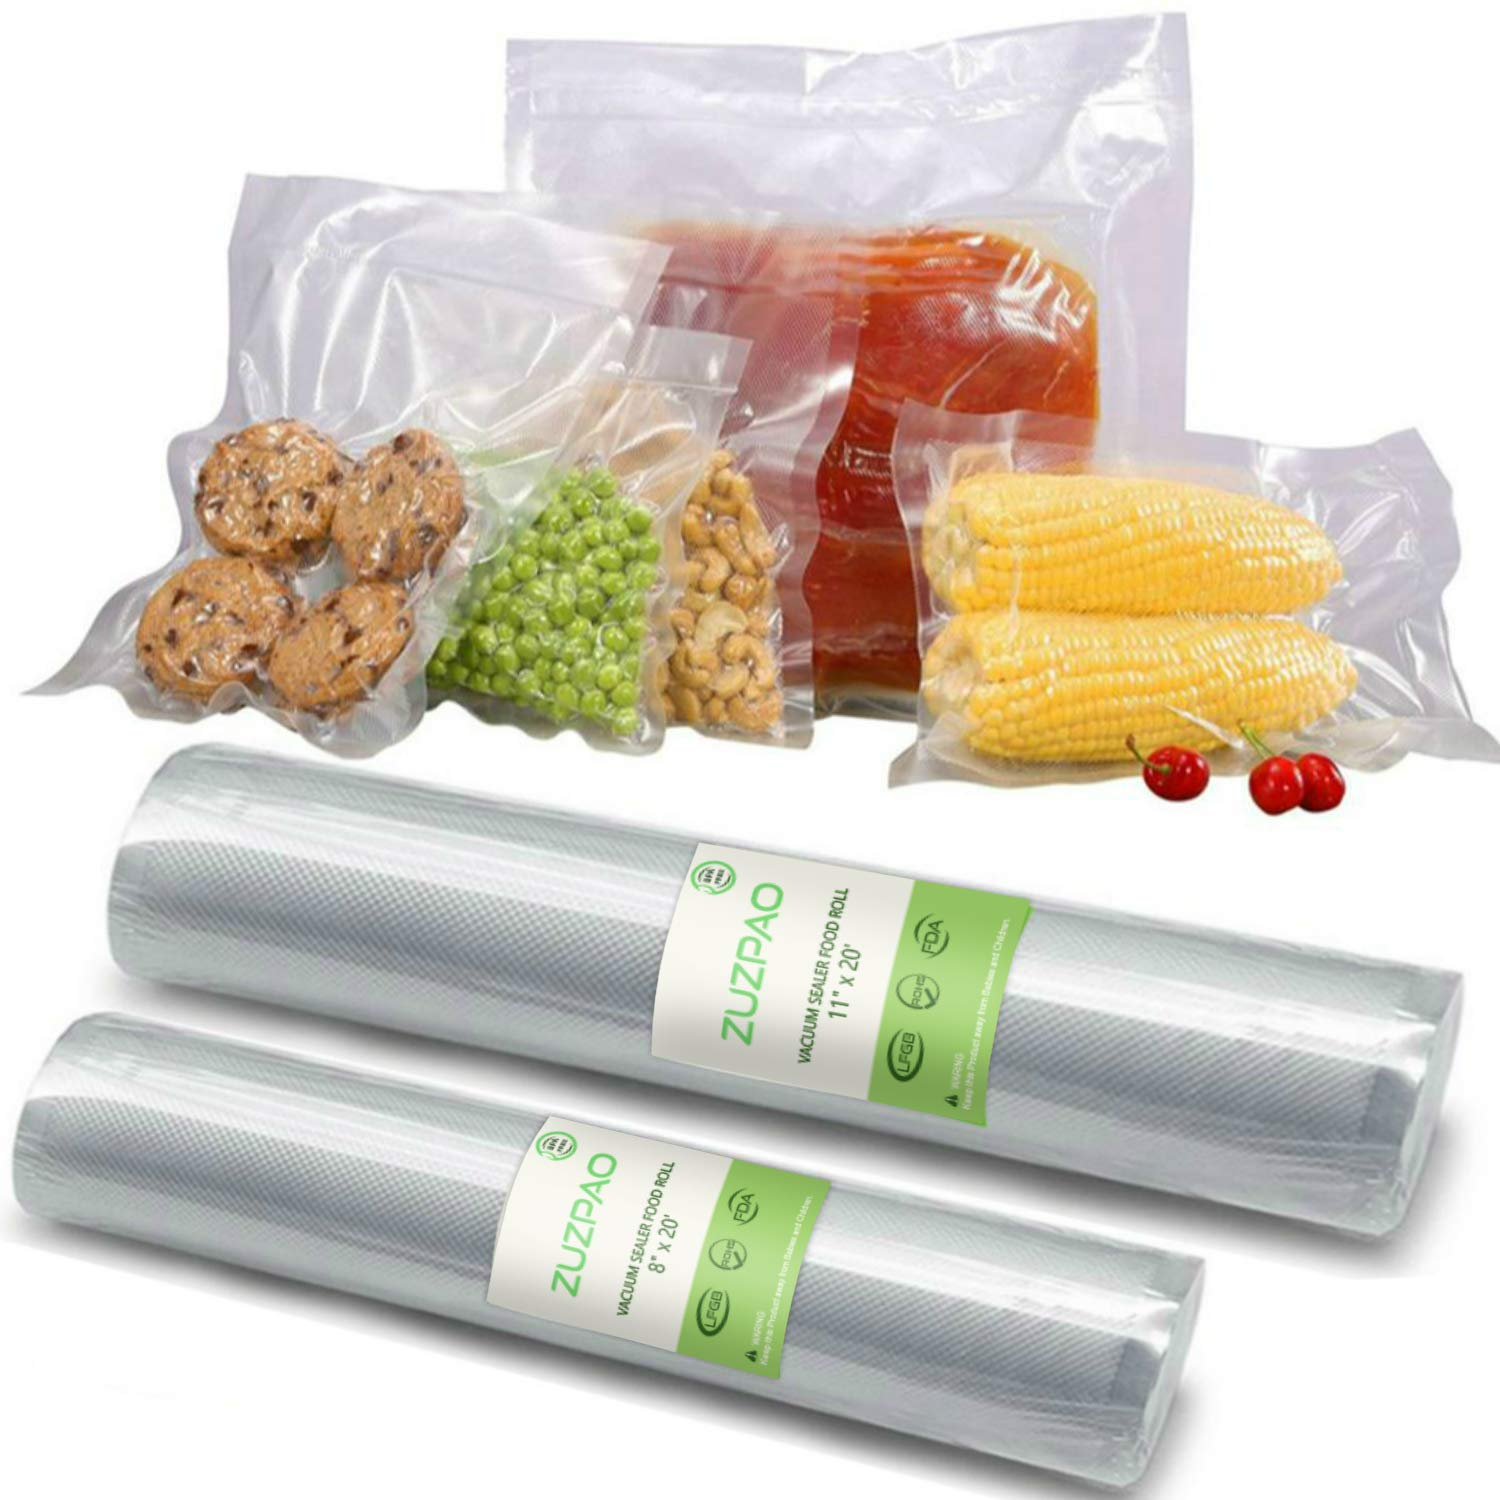 Vacuum Sealer Bags Rolls BPA Free, Zuzpao 11×20 and 8 ×20 Food Sous Vide Cooking Bags FDA Certified for Food Storage Saver Freezer Burn by ZUZPAO